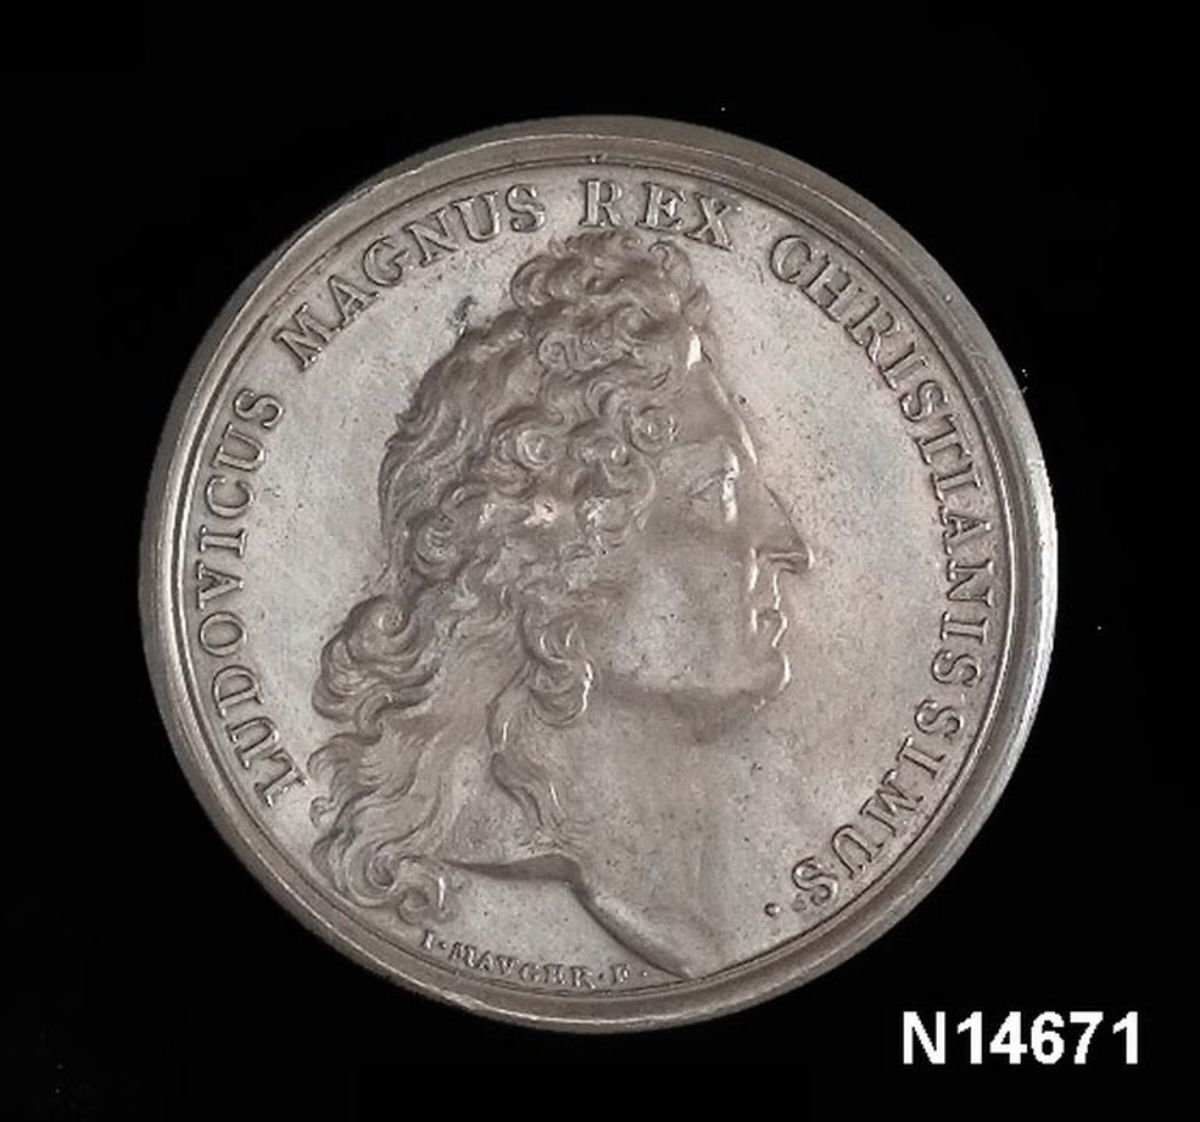 Commemorative medal struck to honor Louis XIV's rare victory at Beachy Head.  Usually, it was the other way around